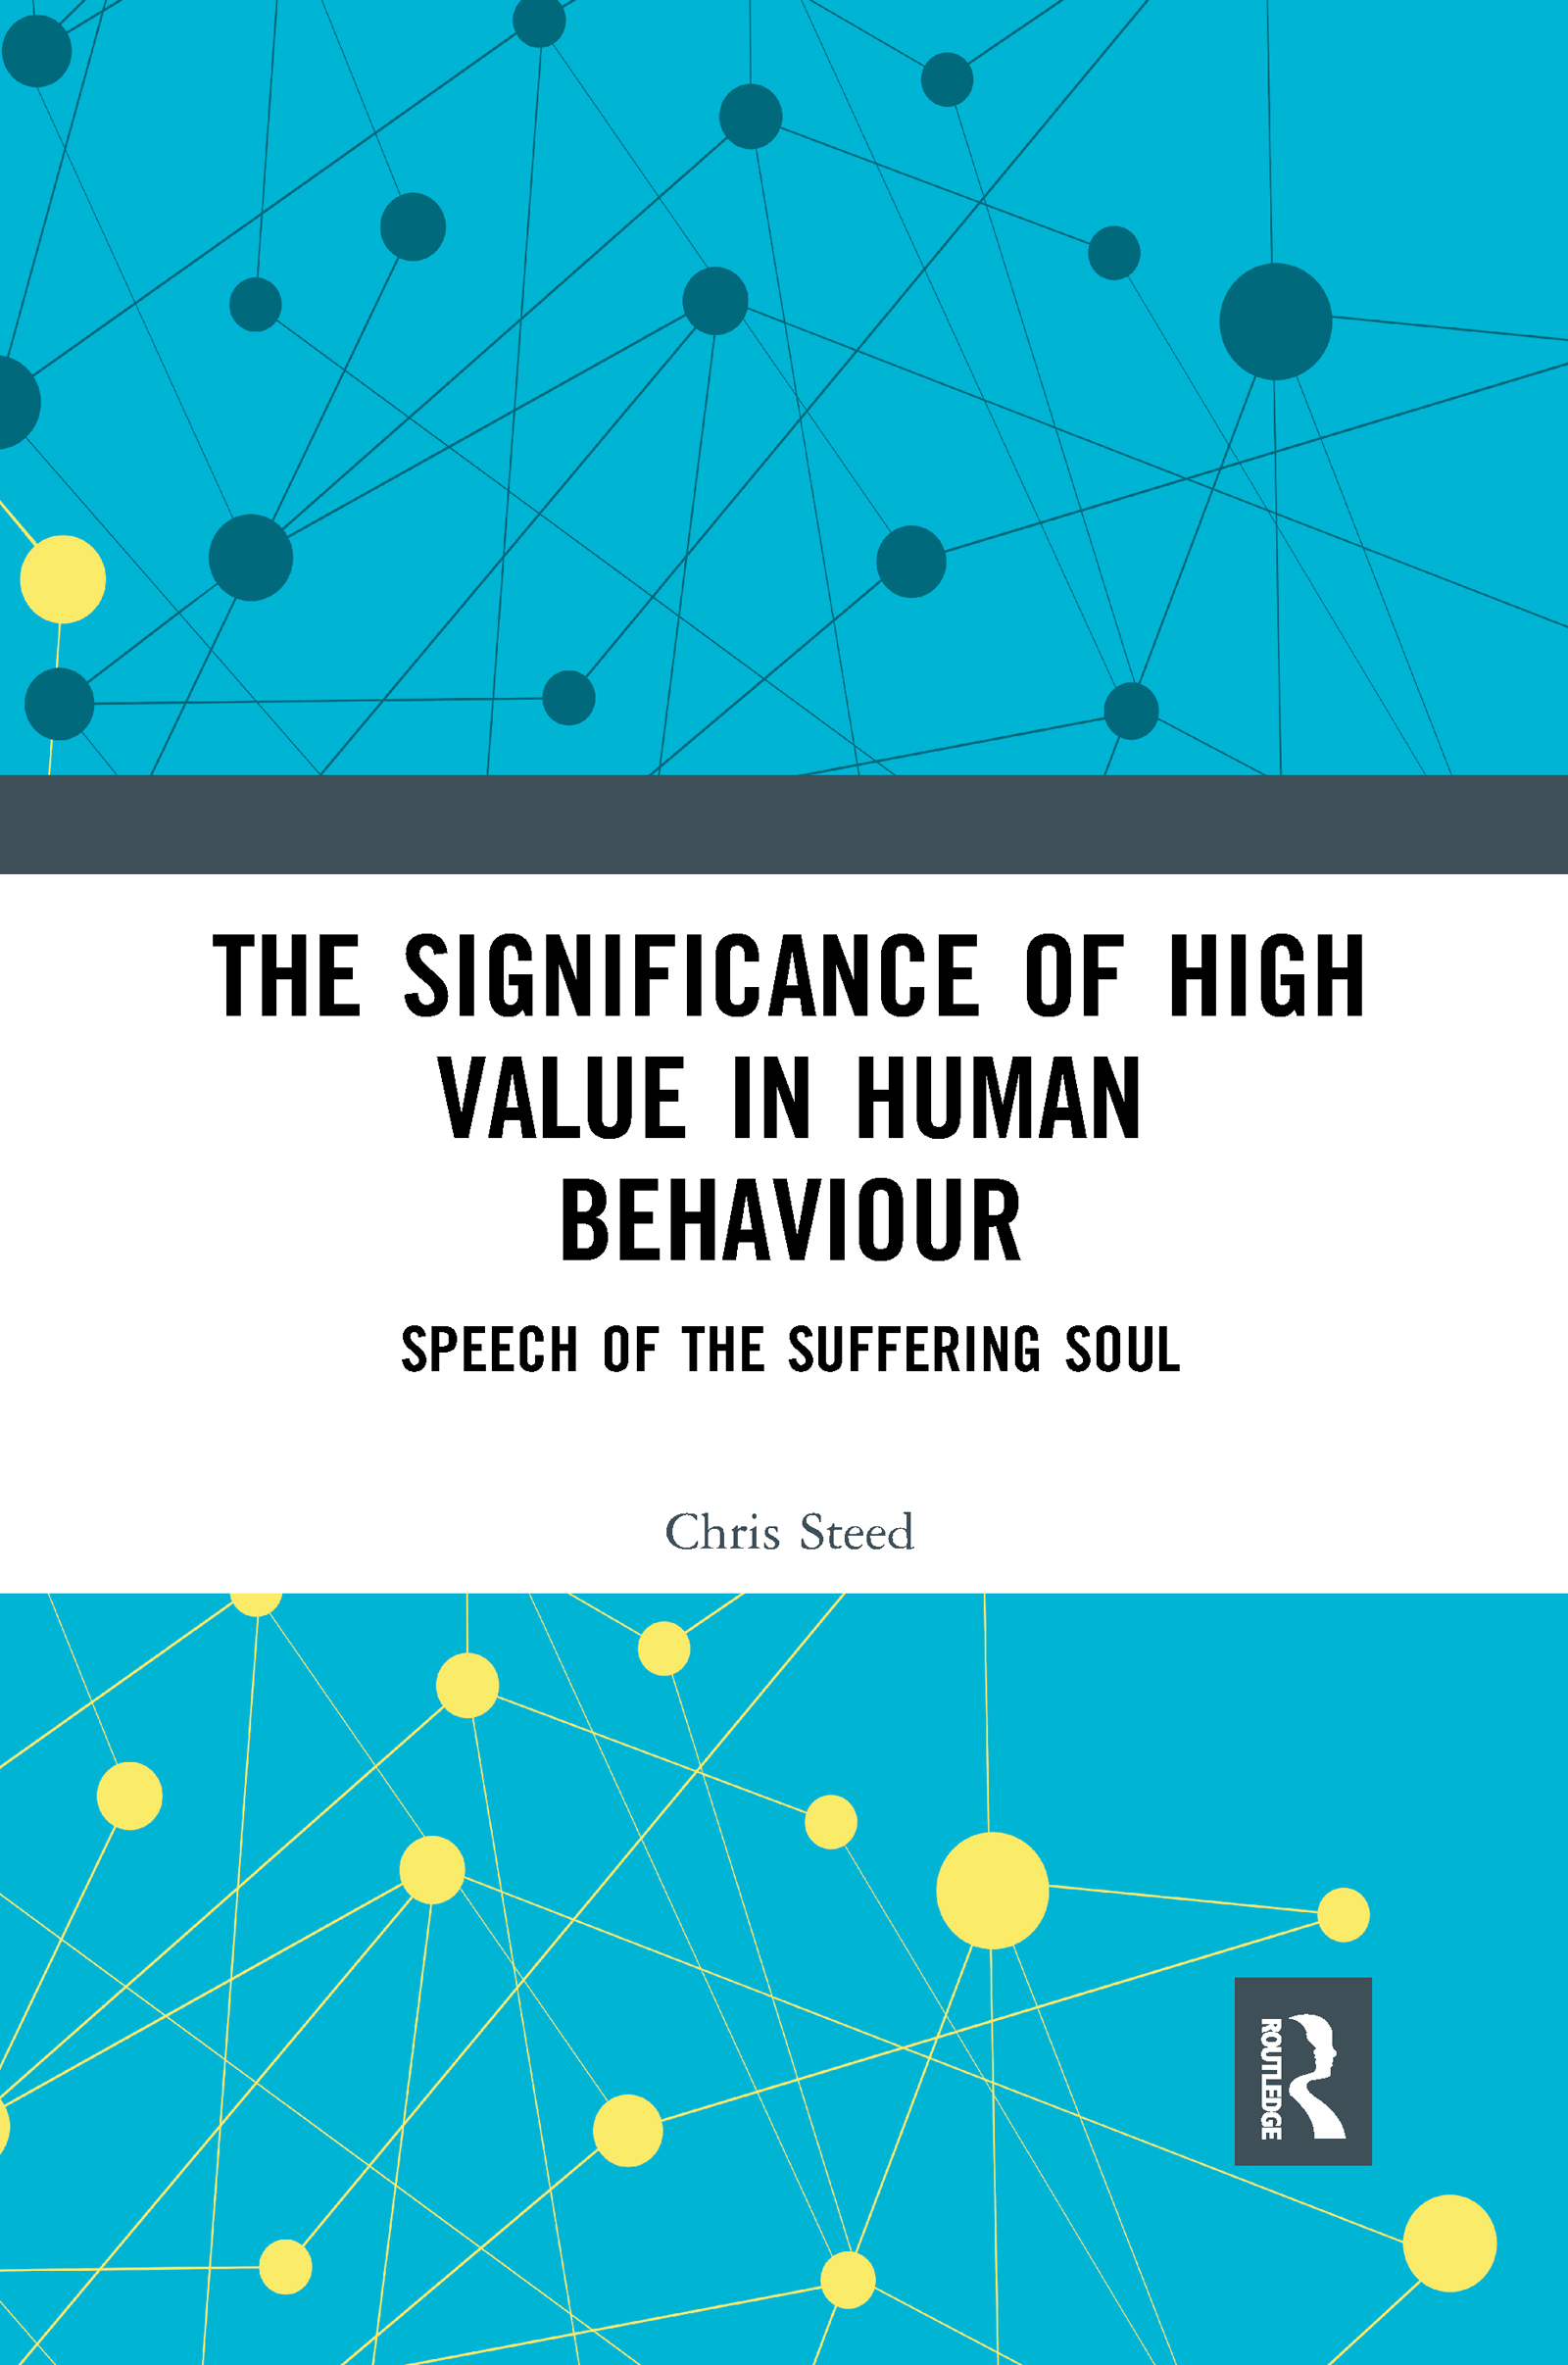 The Significance of High Value in Human Behaviour